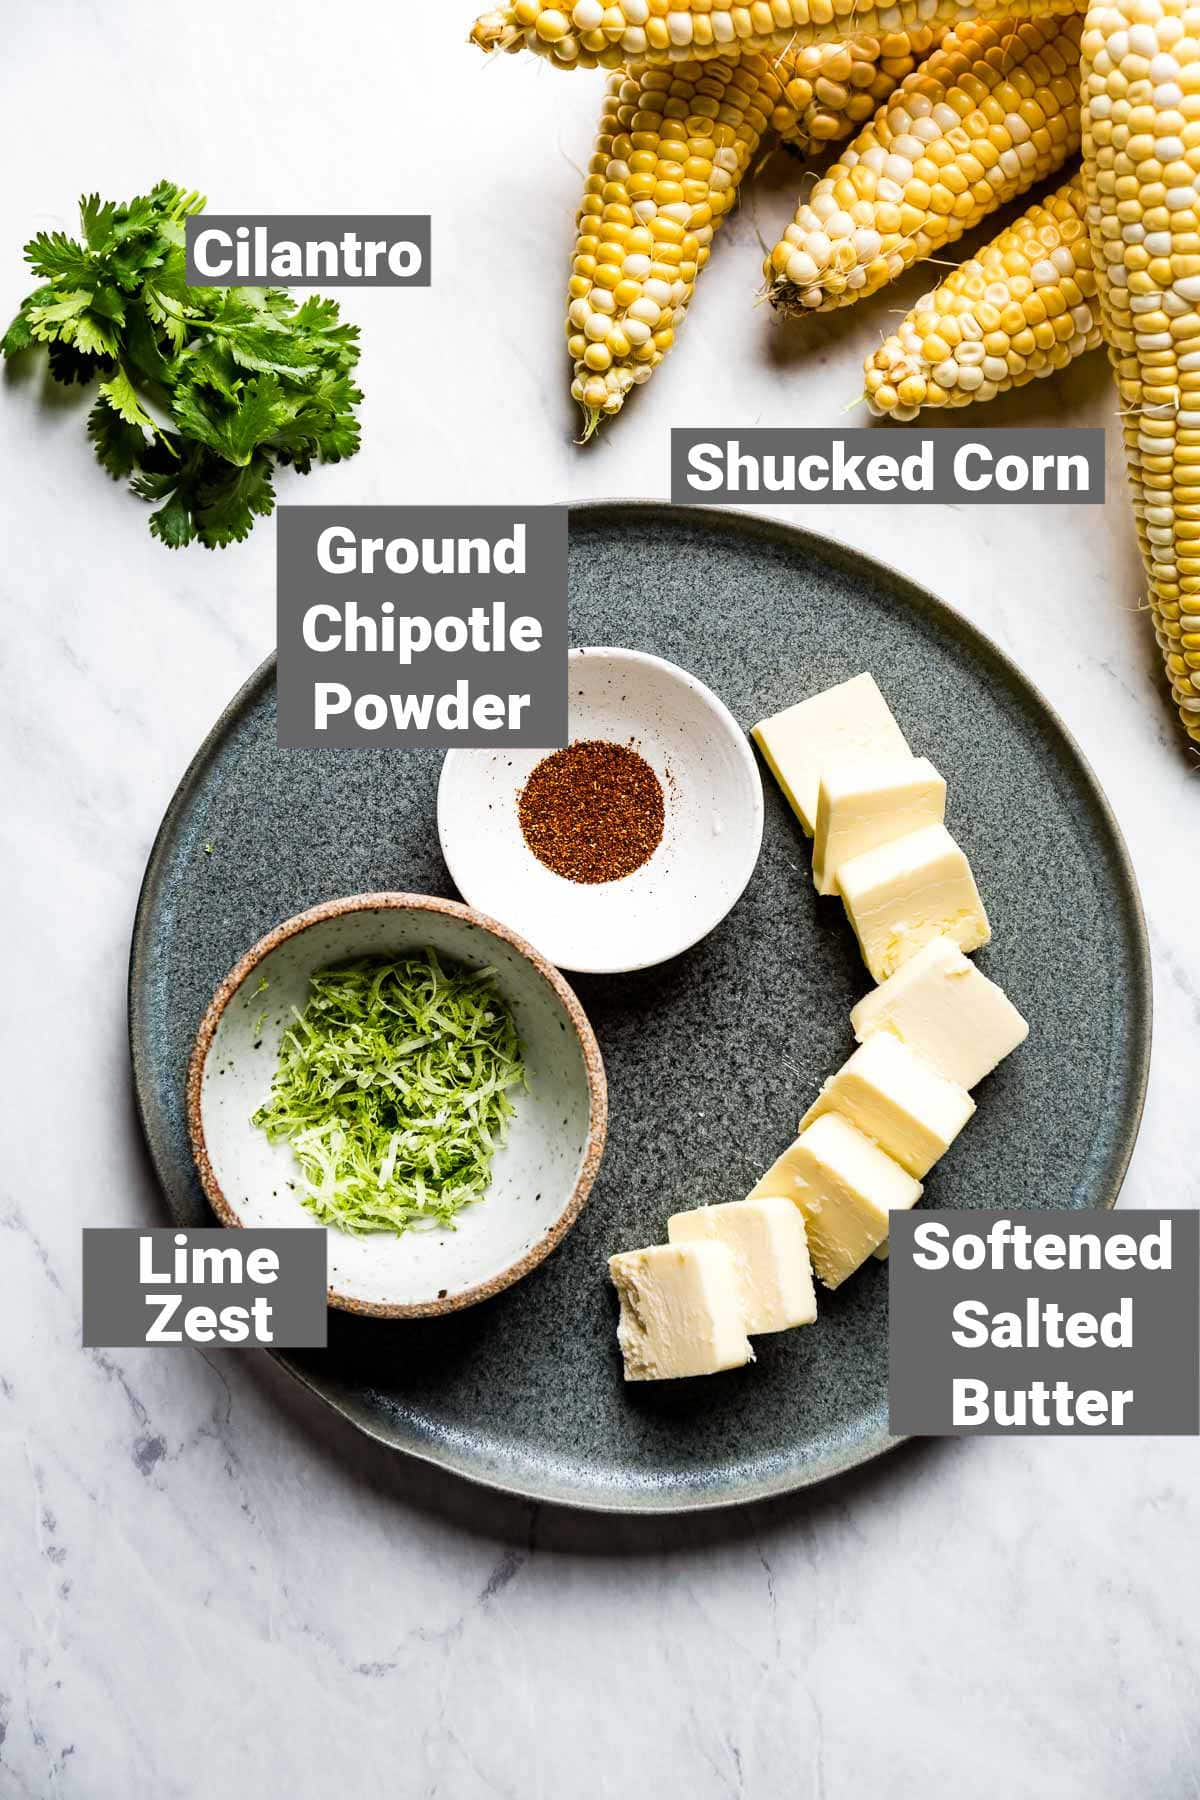 the ingredients with labels